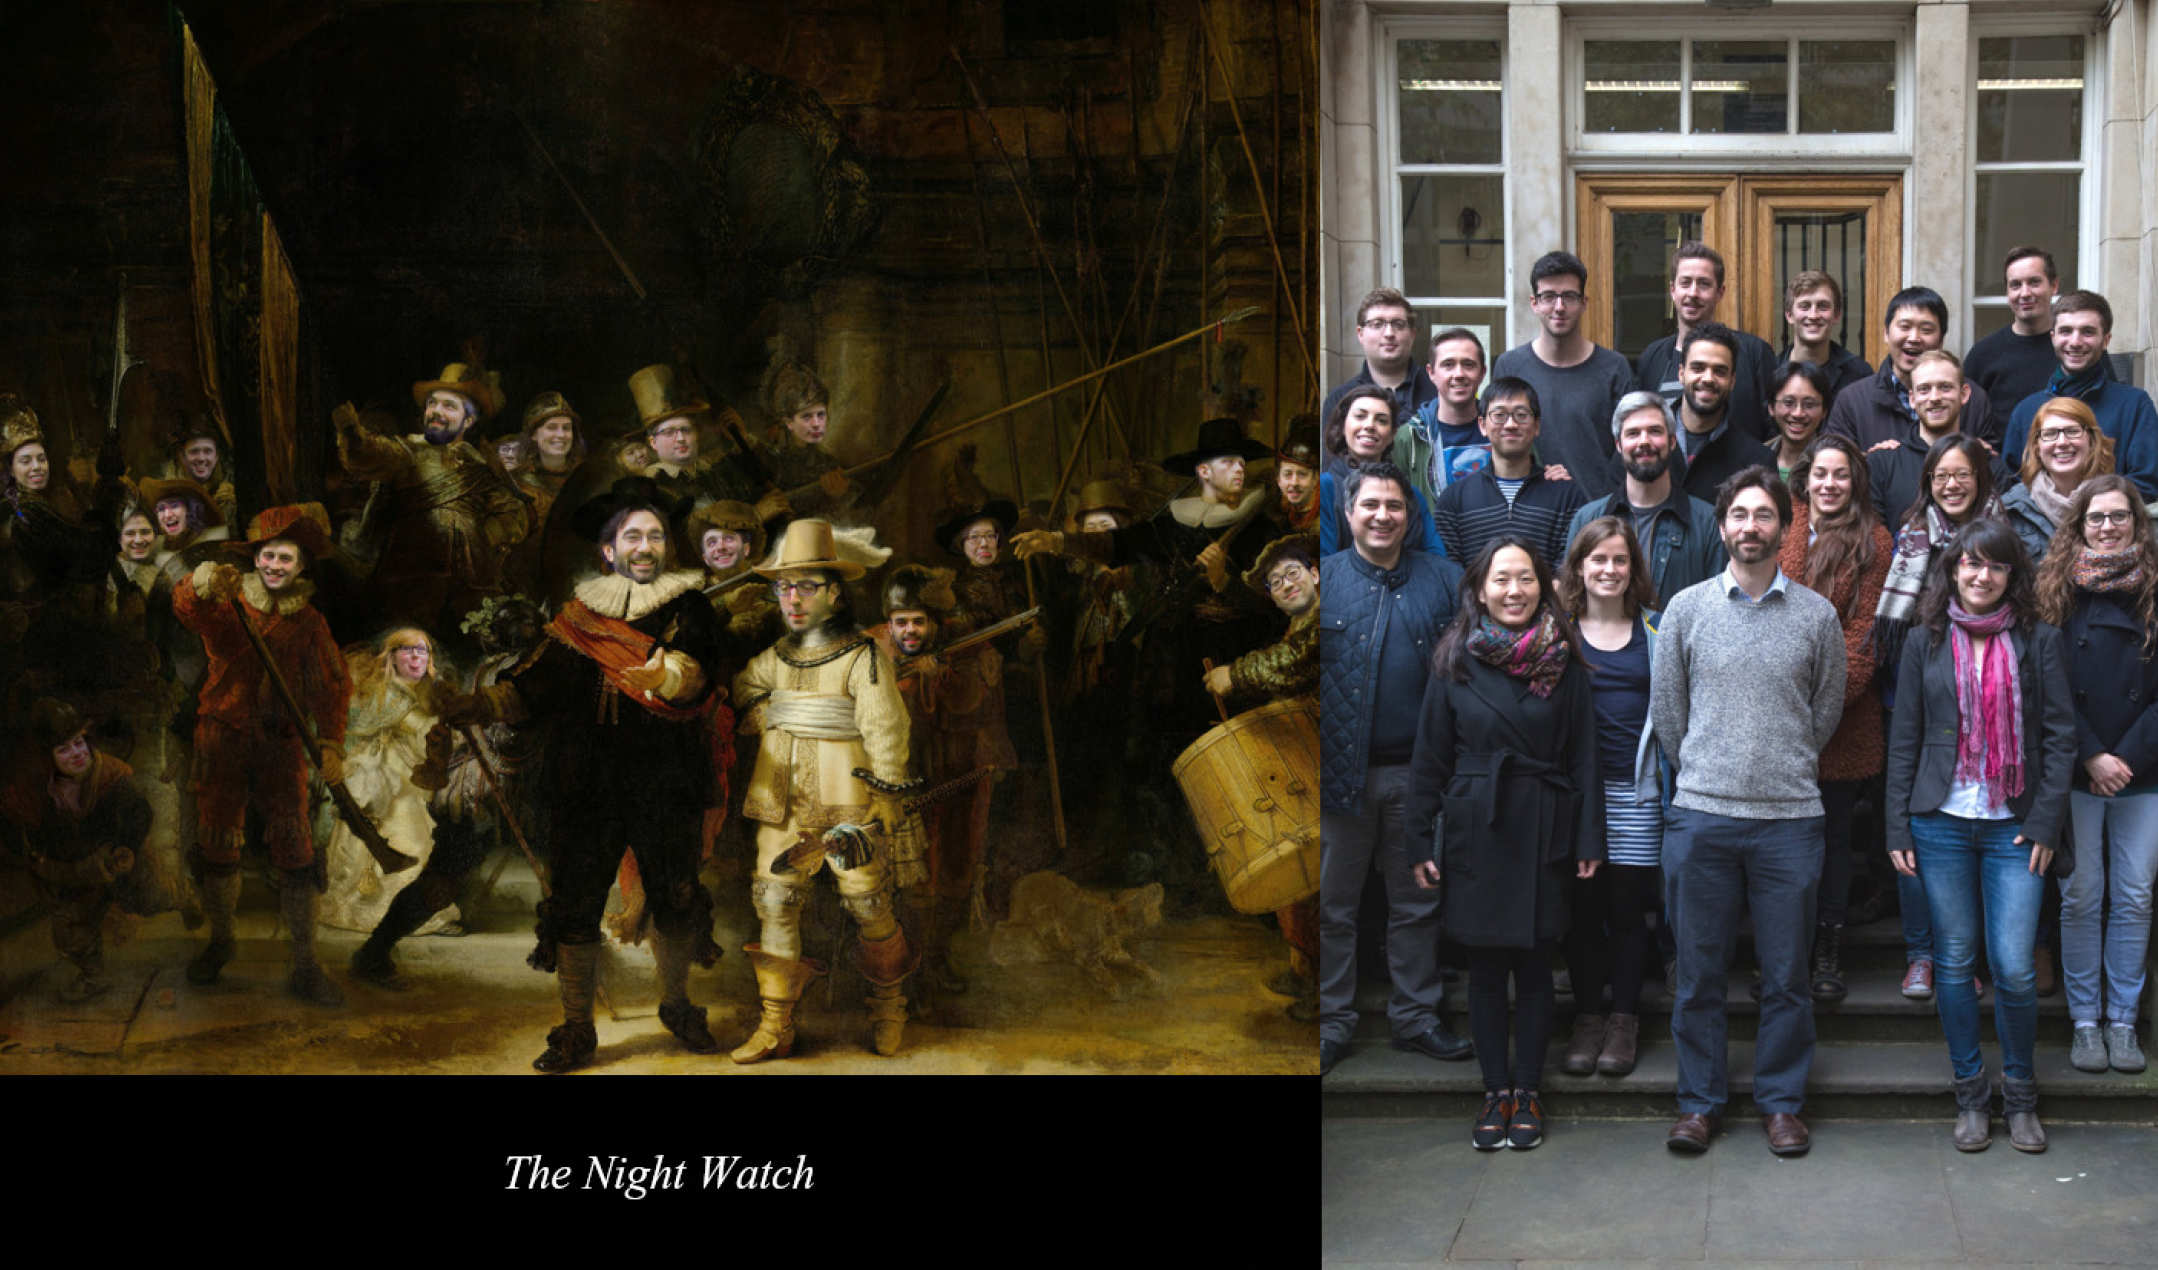 Faces put onto Rembrandts 'Night Watch' alongside 2016 group photo